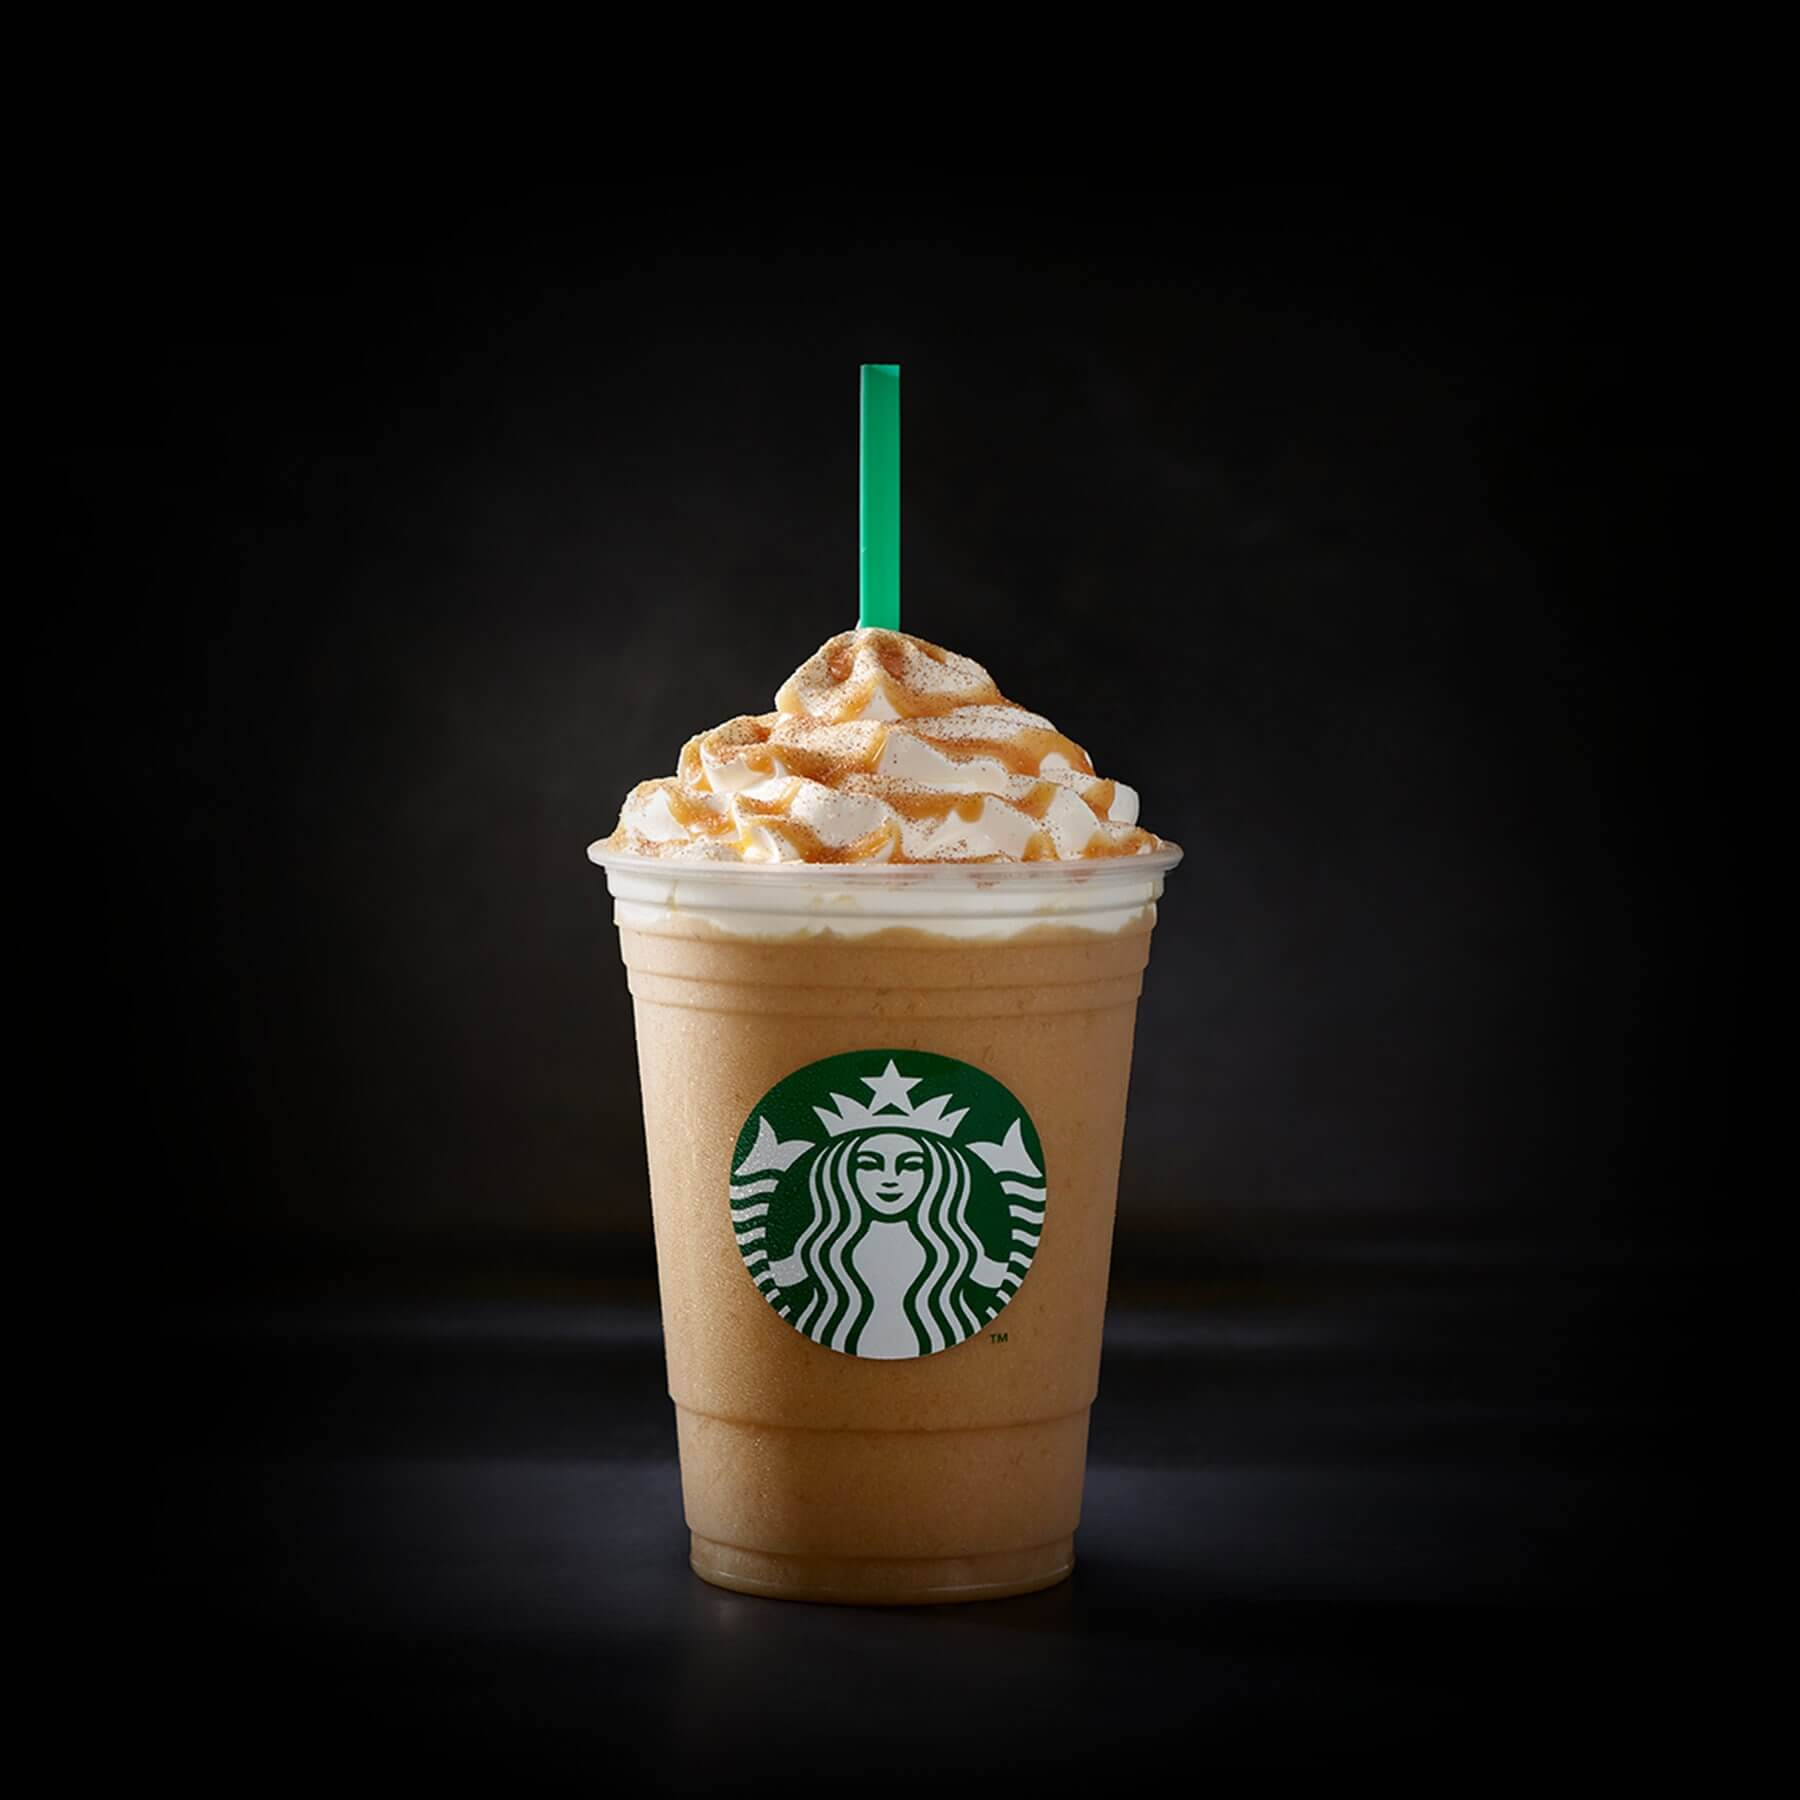 Frappuccino Blended Beverages Starbucks Ruang Harga